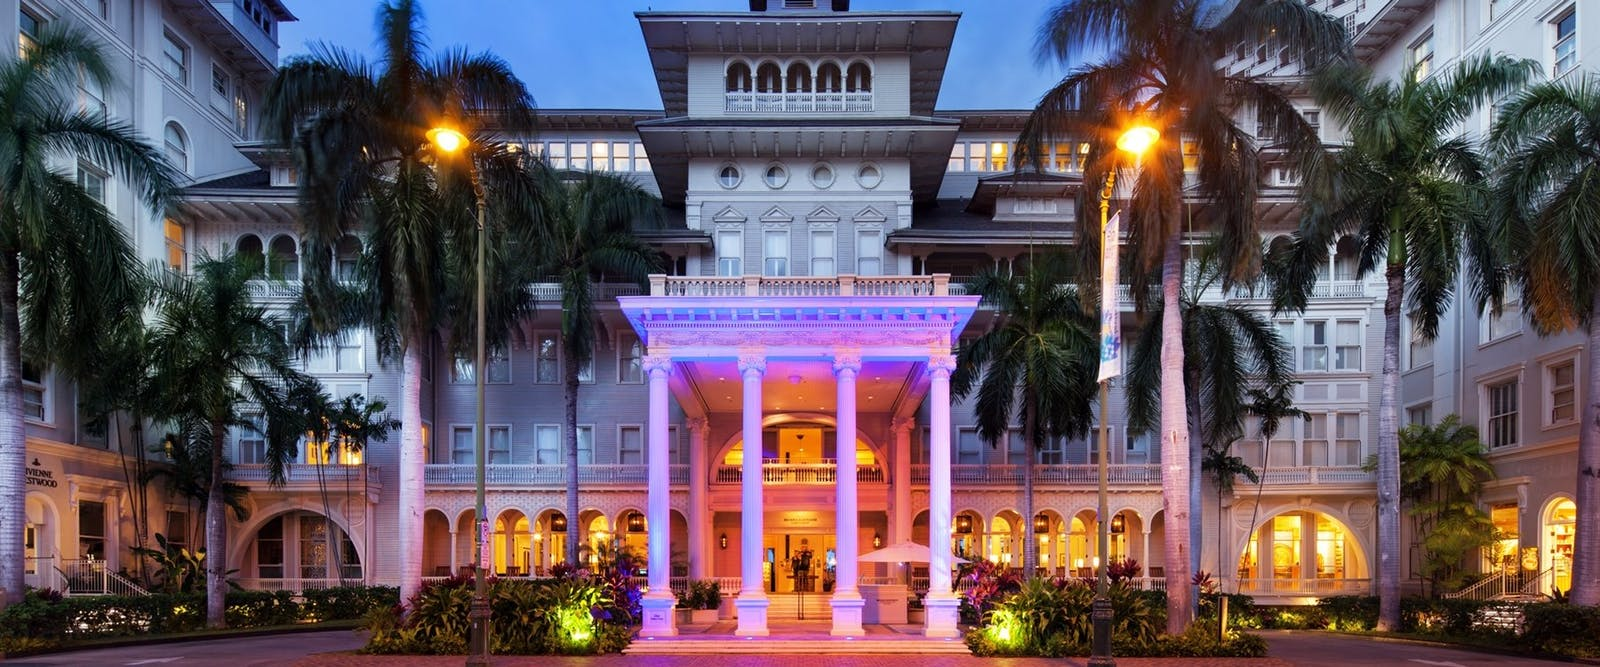 Moana Surfrider, A Westin Resort